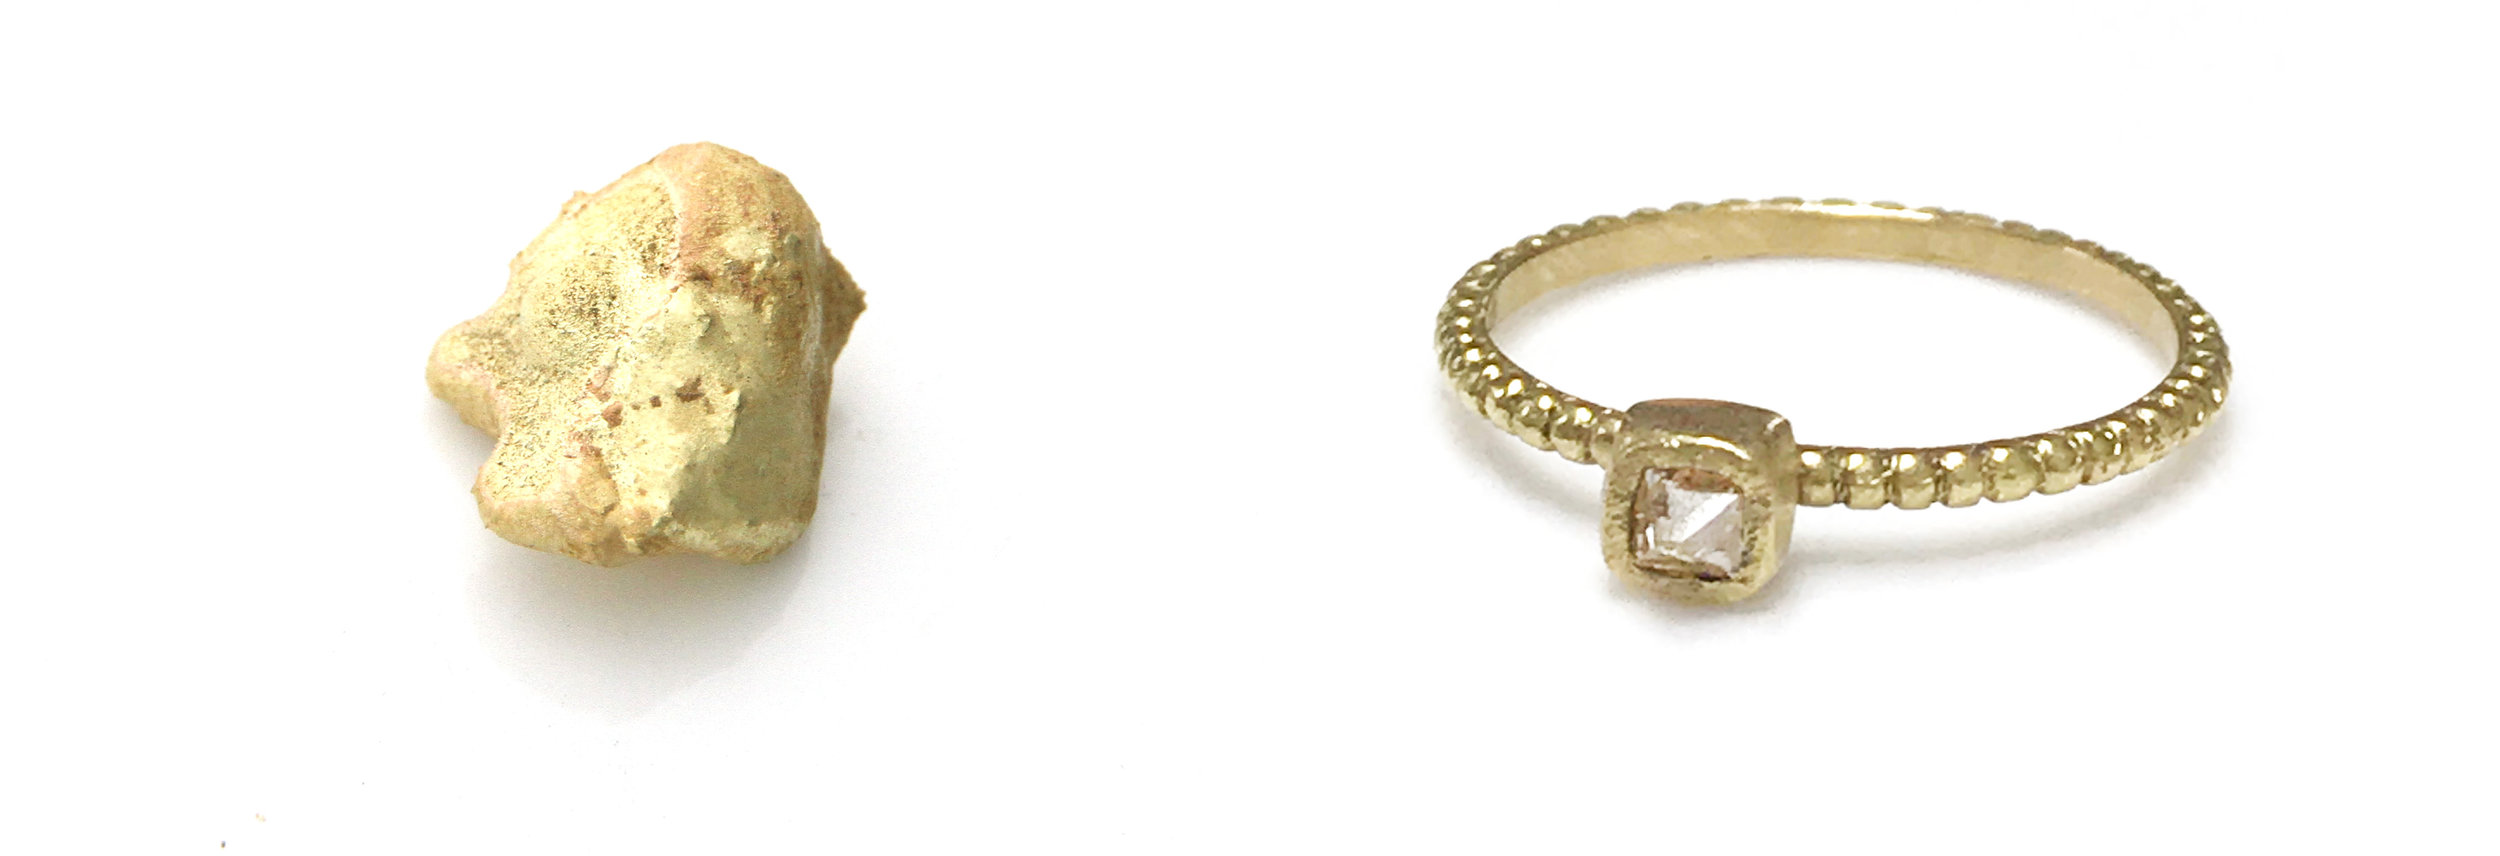 Before. Recycled gold nugget . After . Hand made grained ring with Georgian diamond .